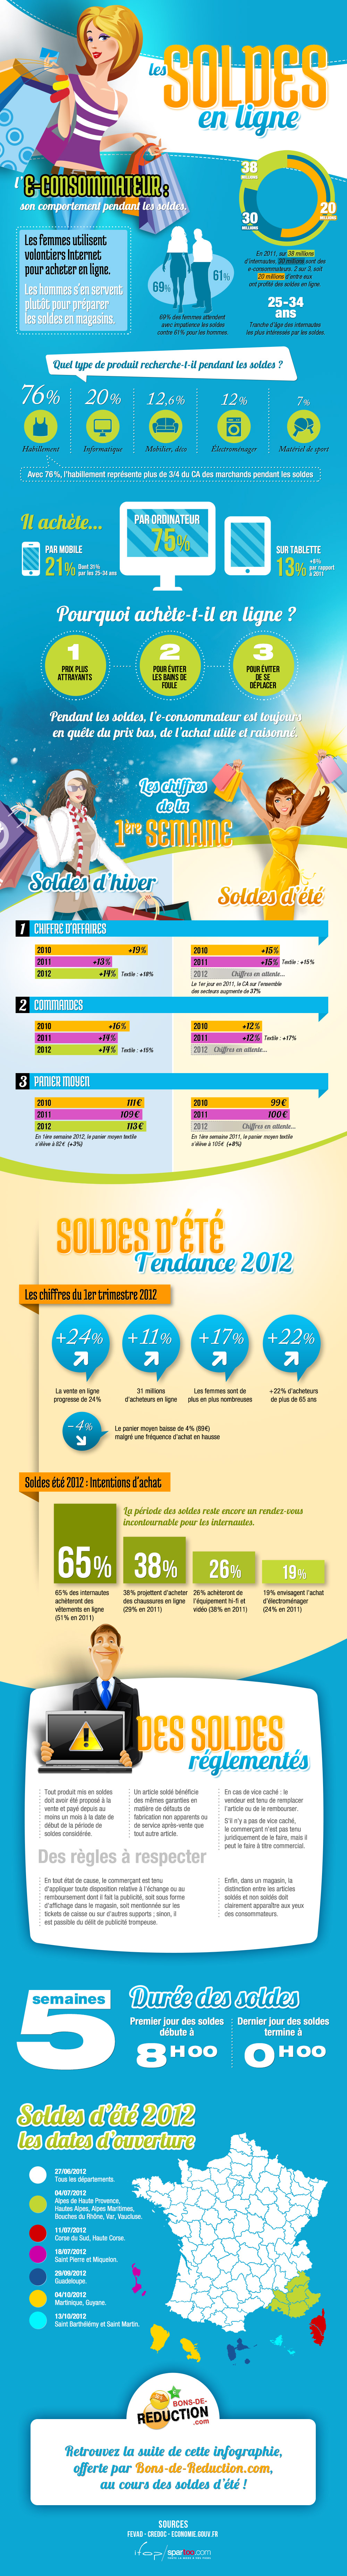 infographie_soldes_hd